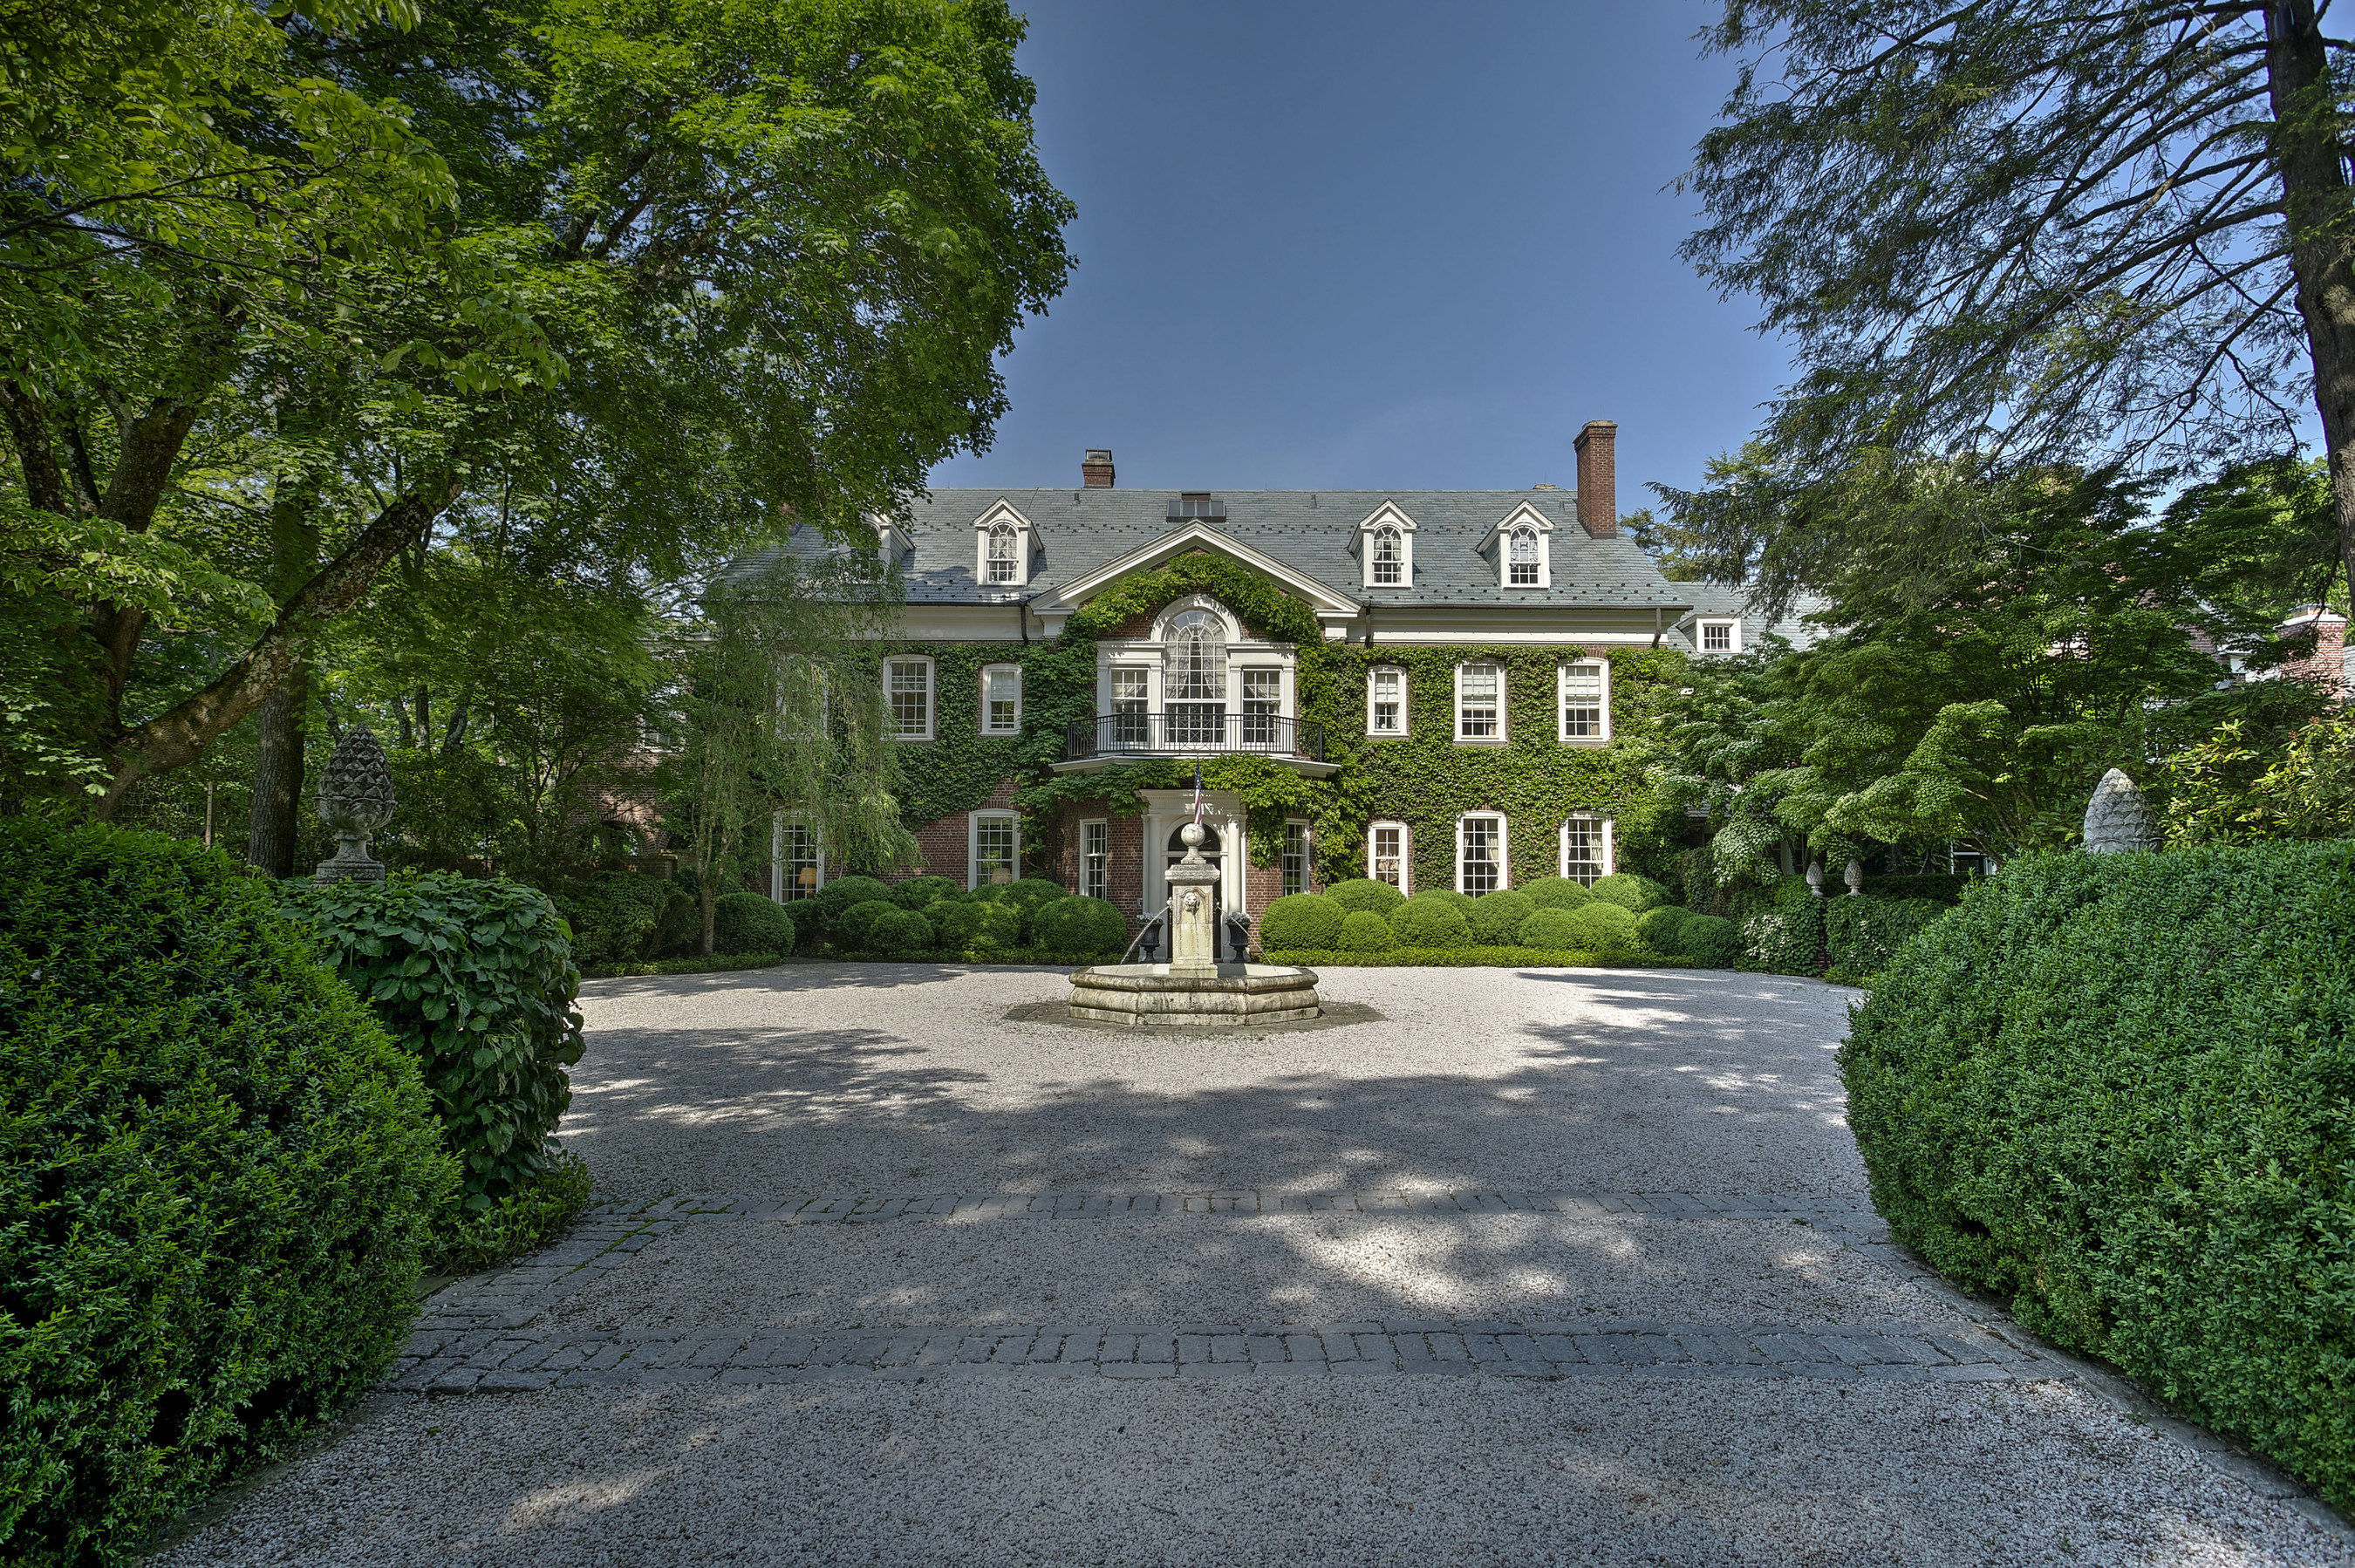 Available for purchase, the renowned Cragwood Estate features 112 private acres less than one hour from New York City.